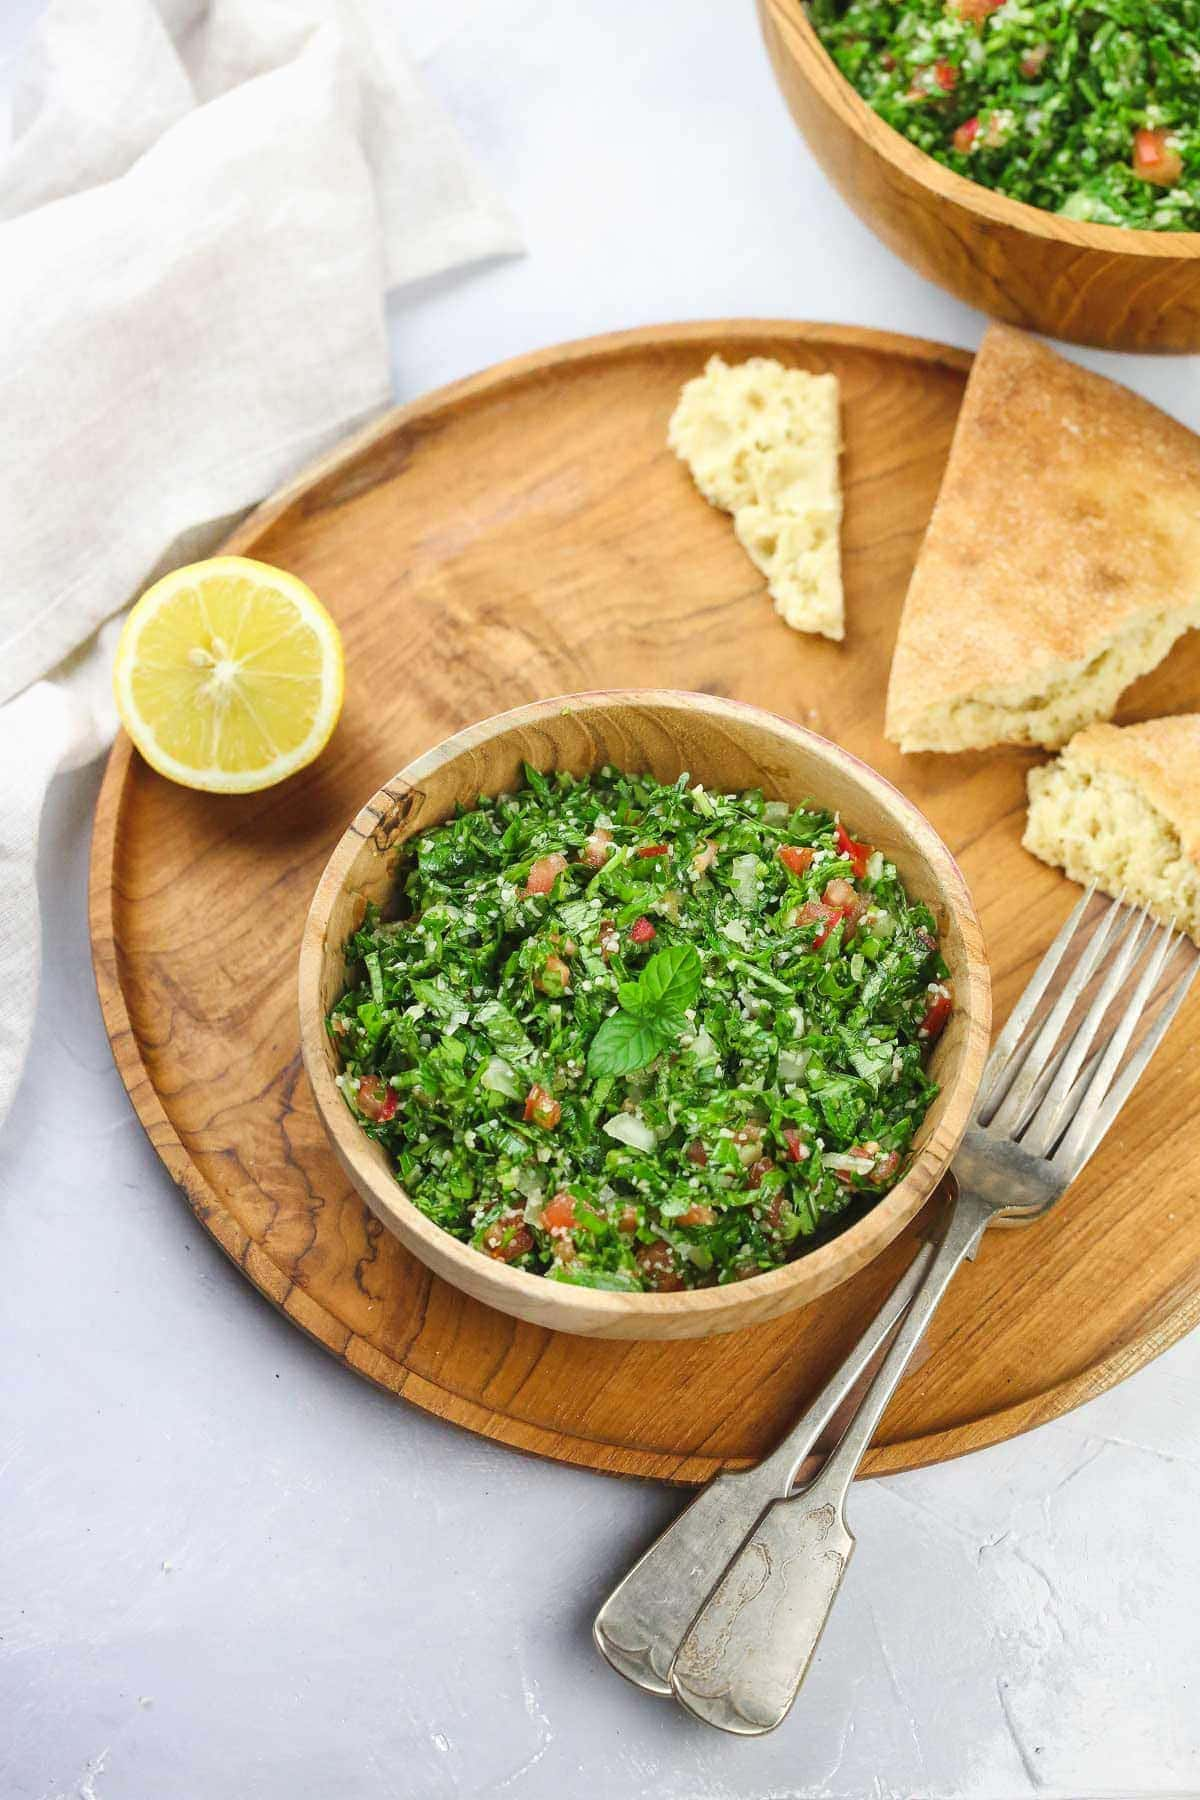 Authentic tabouli salad recipe